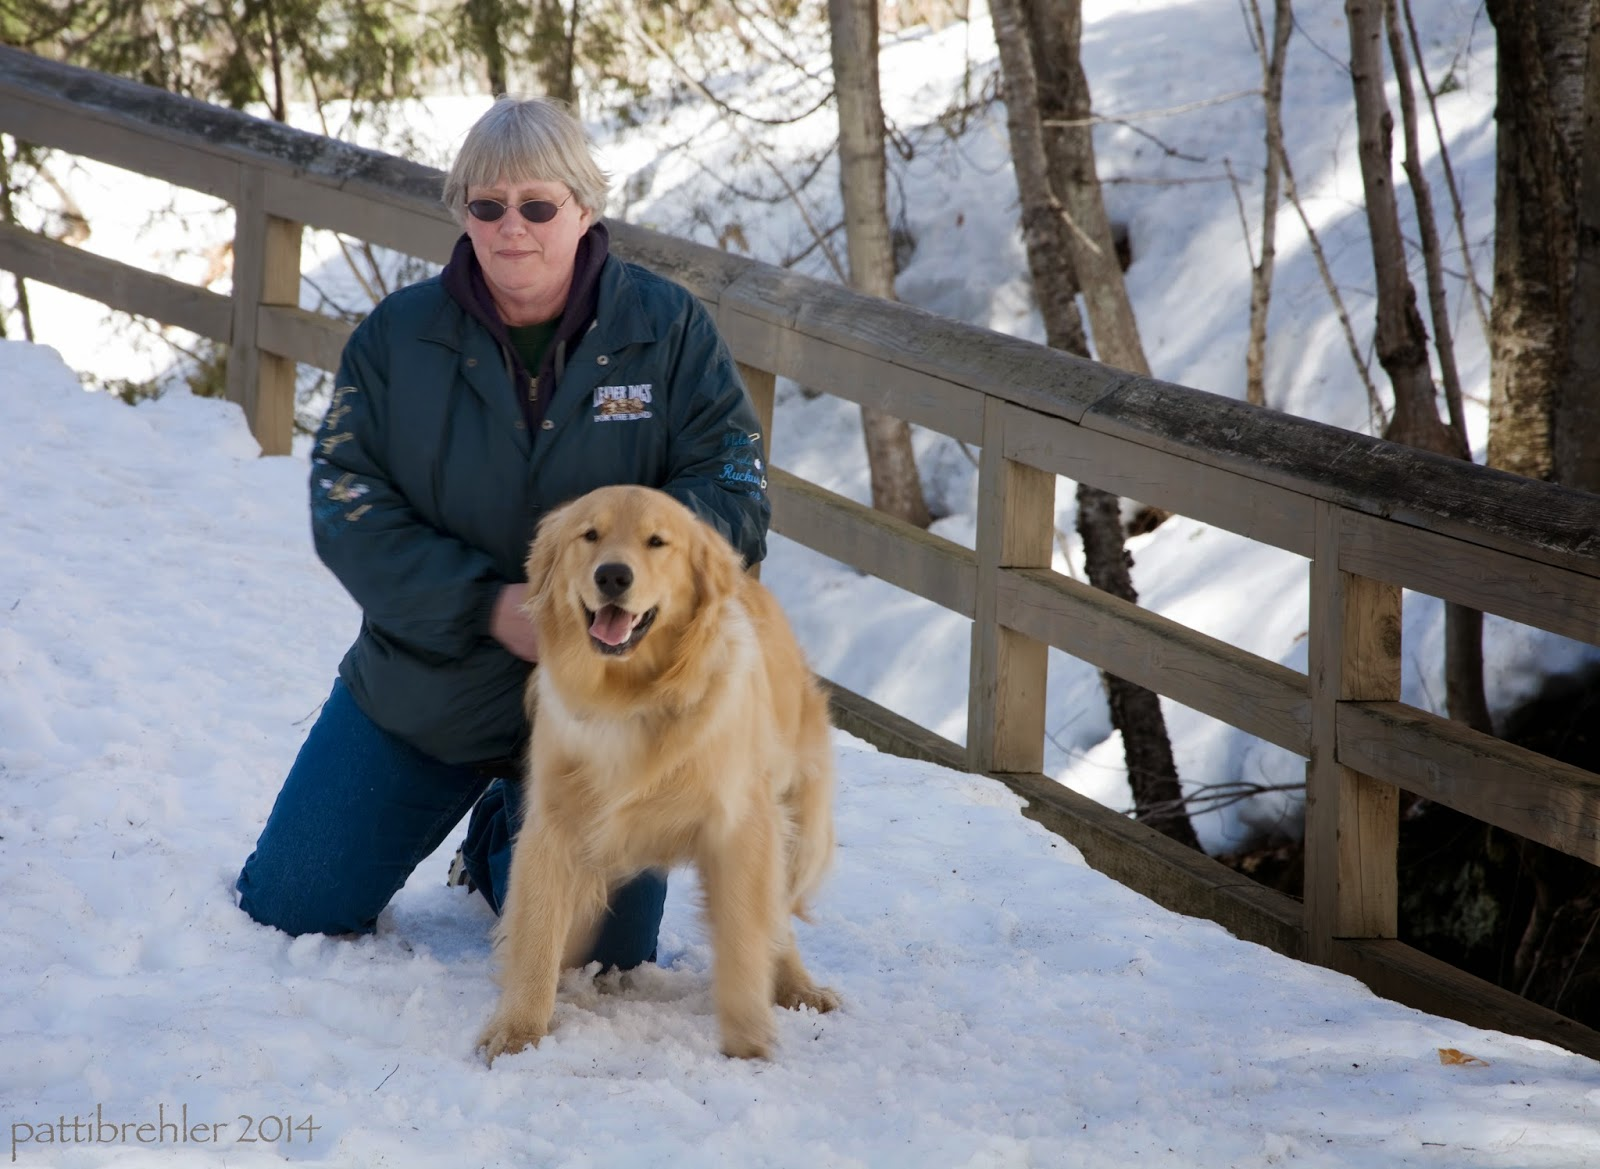 A woman dressed all in blue wearing sunglasses appears to be kneeling on a snowcovered path with a golden retriever in front of her. There is a wooded fence along the path with trees in the background.